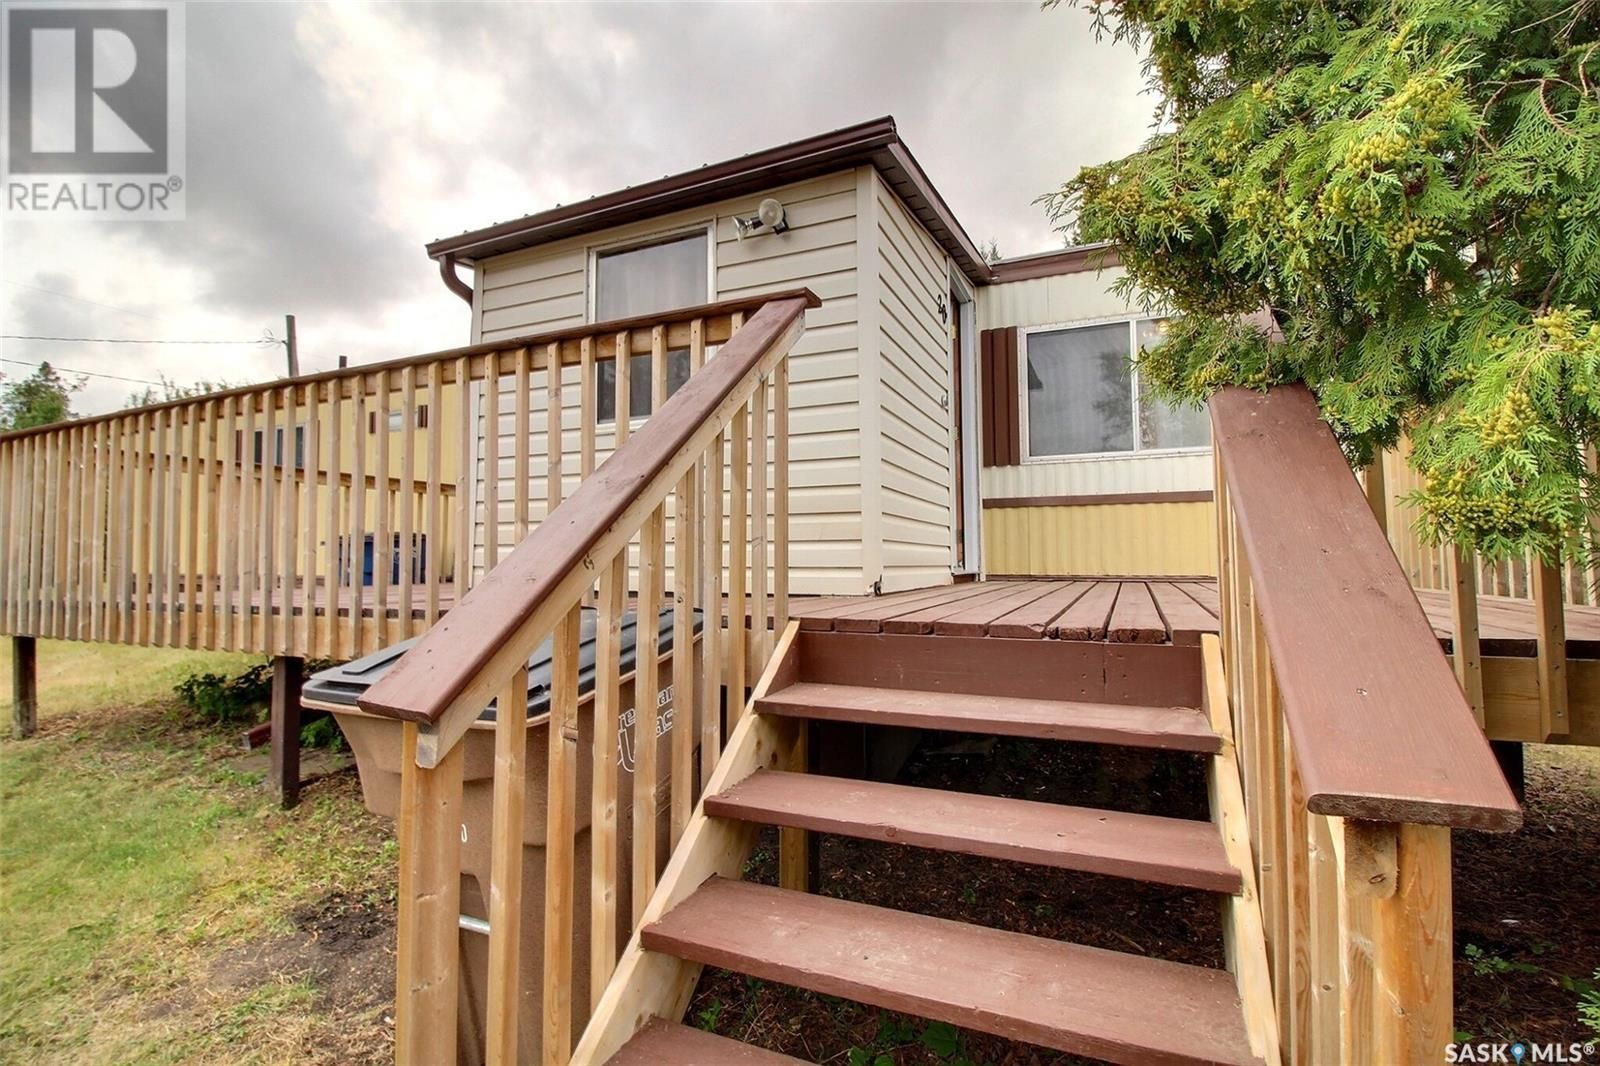 Main Photo: 20 1st ST W in Birch Hills: House for sale : MLS®# SK867485